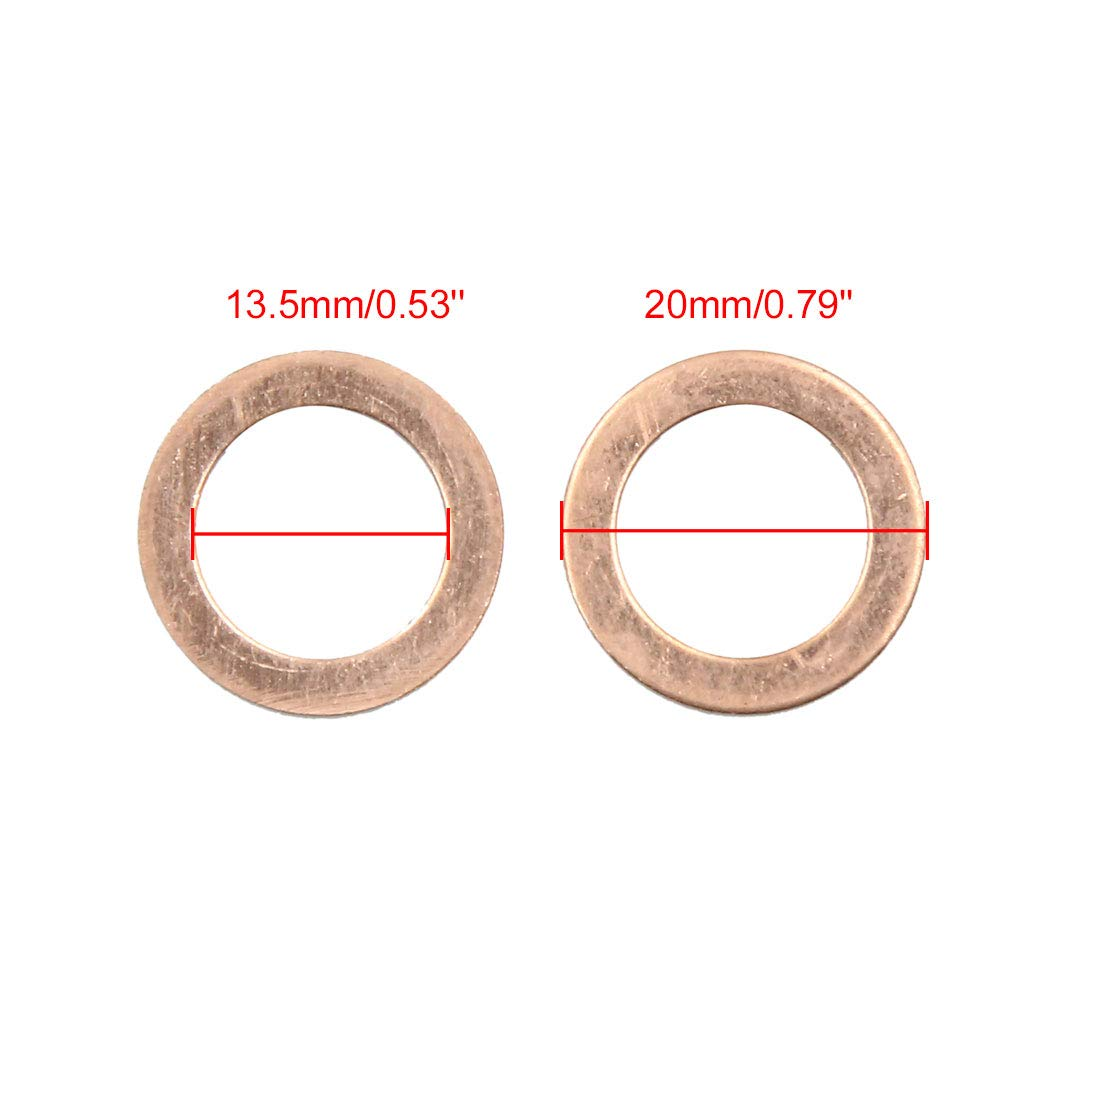 X AUTOHAUX 13.5mm Inner Dia Copper Flat Washers Car Sealing Gaskets Rings 50pcs by X AUTOHAUX (Image #3)